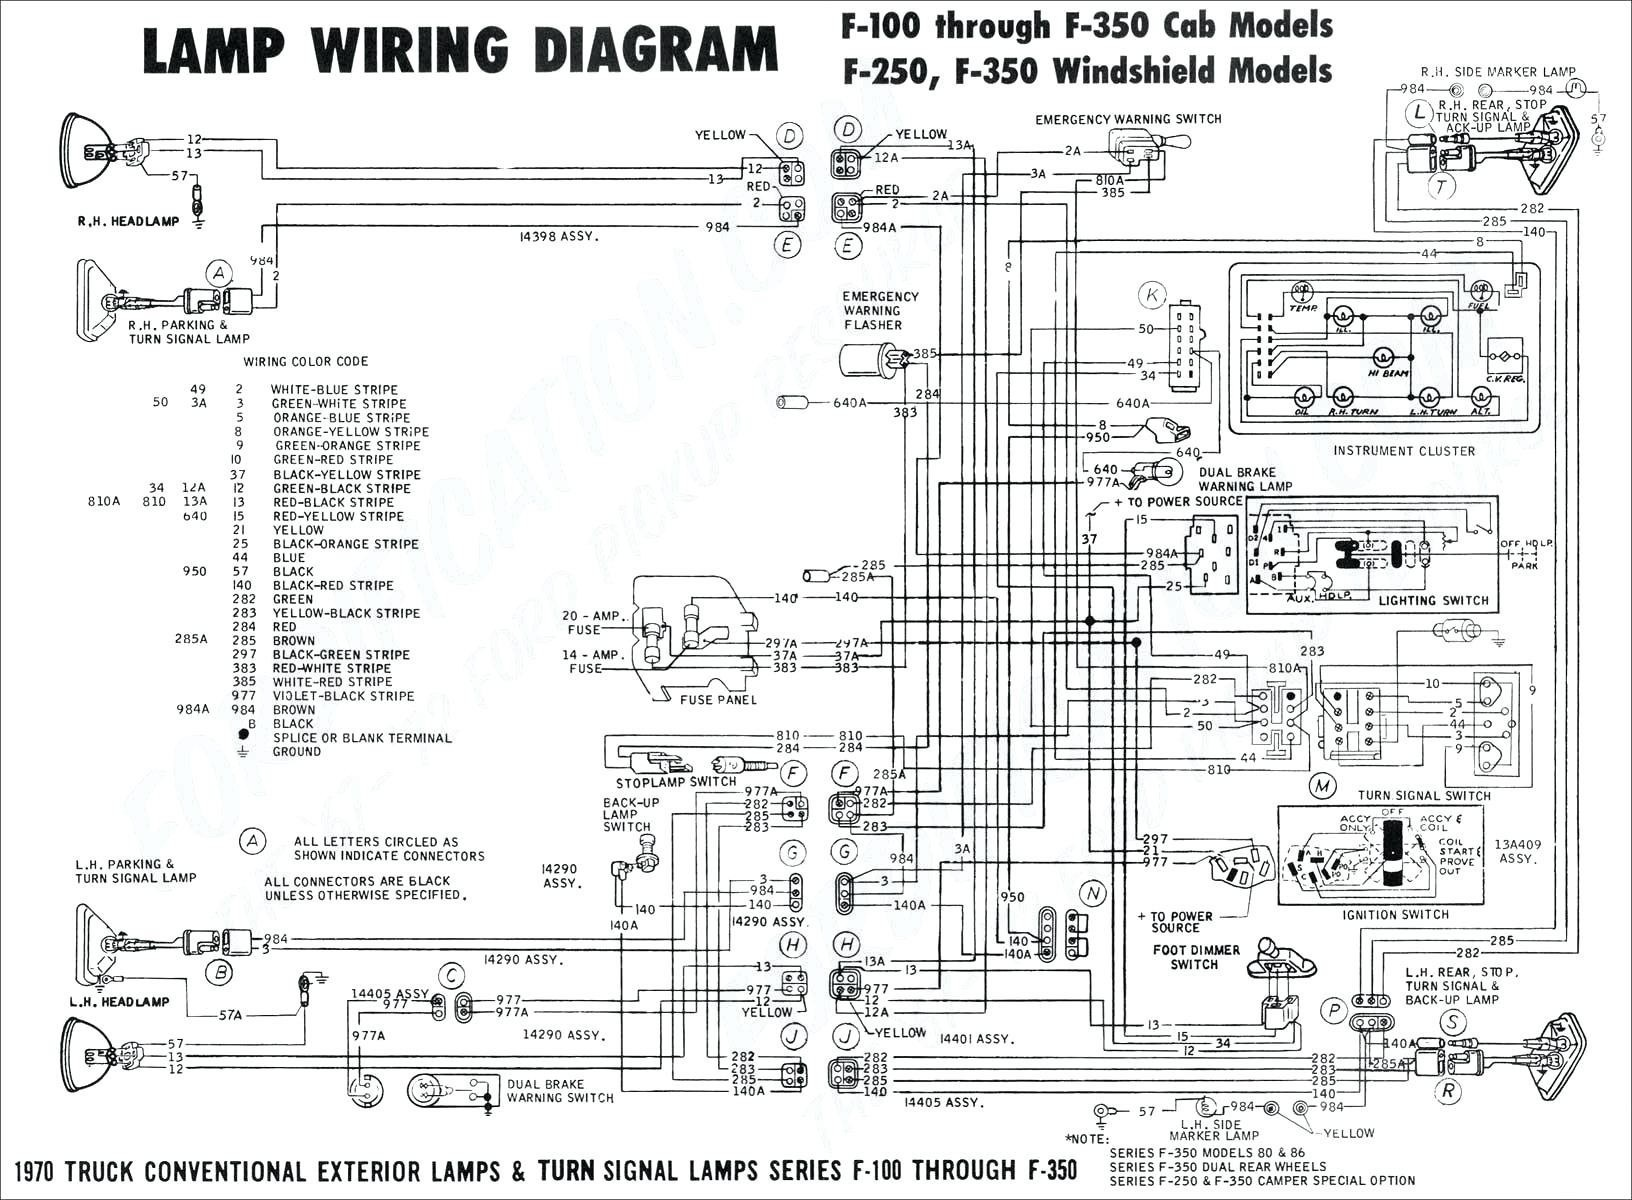 Tail Light Wiring Diagram for 2000 F350 Pool Light Wiring Diagram Of Tail Light Wiring Diagram for 2000 F350